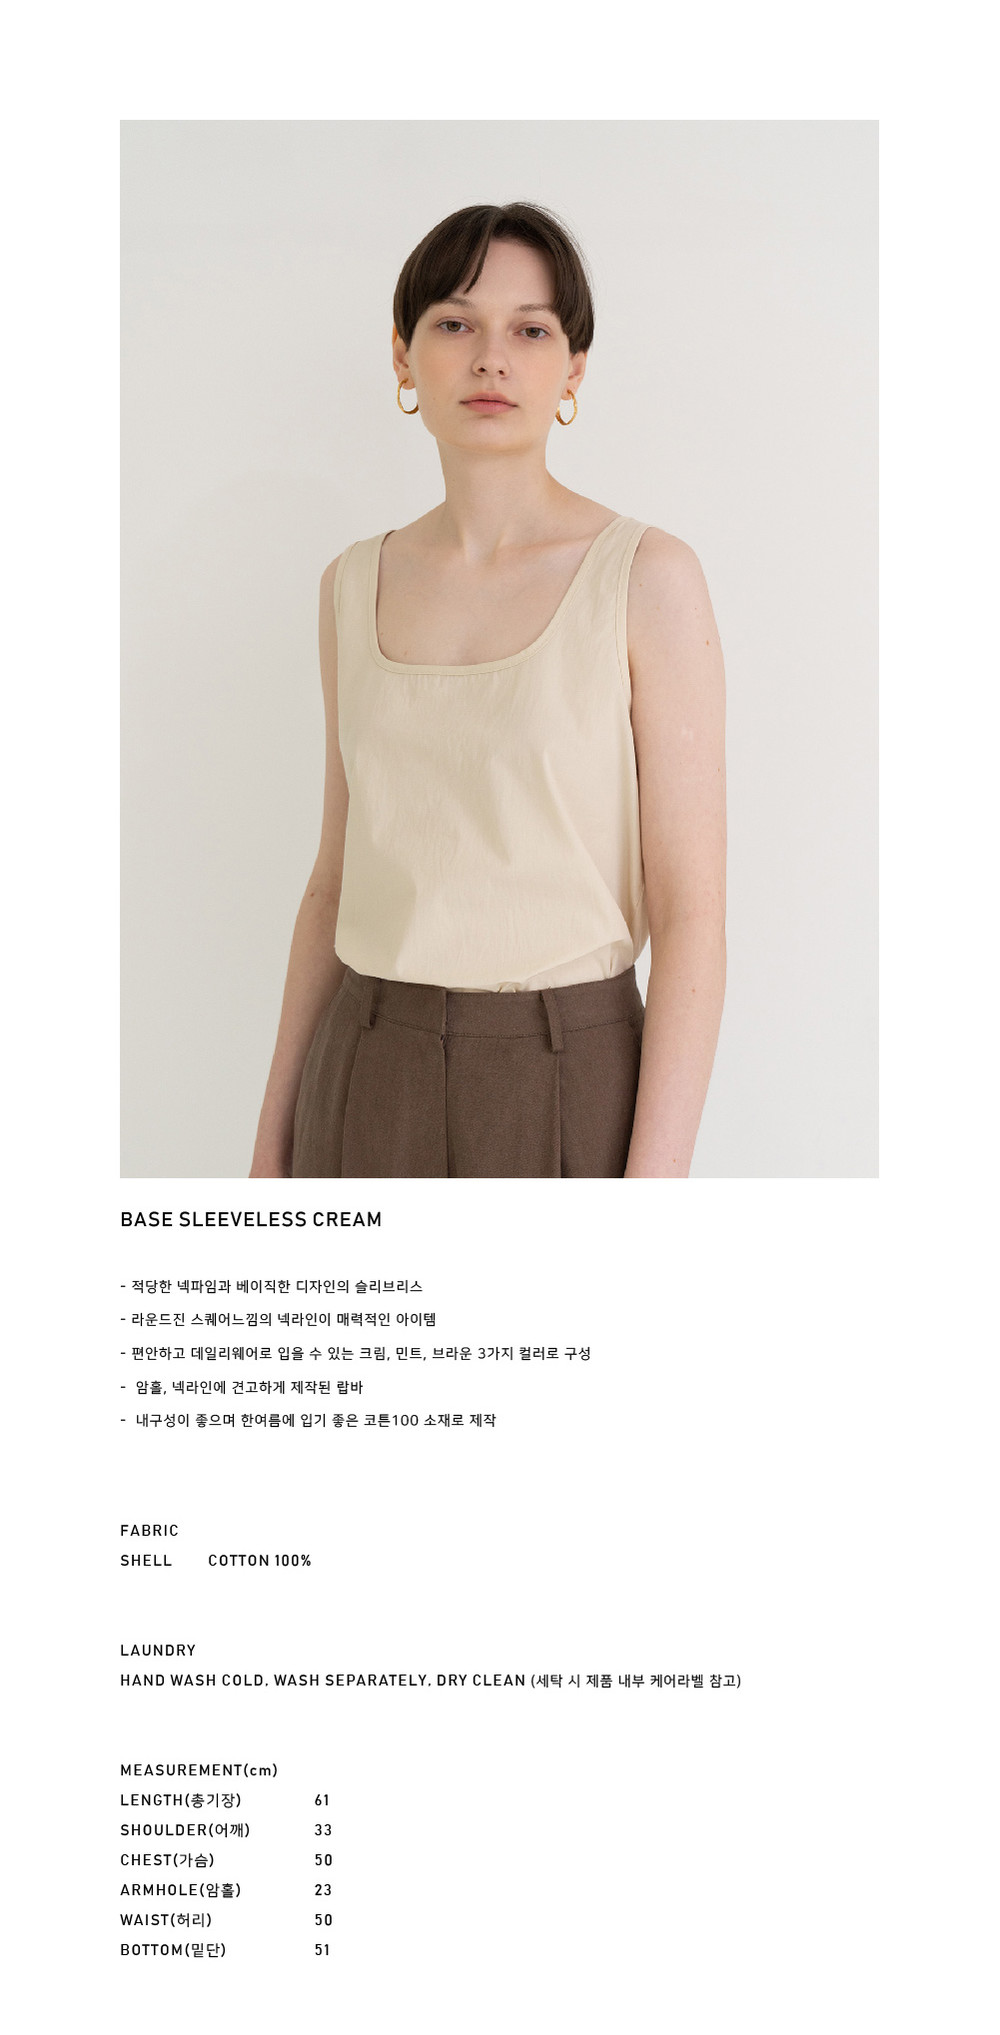 BASE SLEEVELESS CREAM